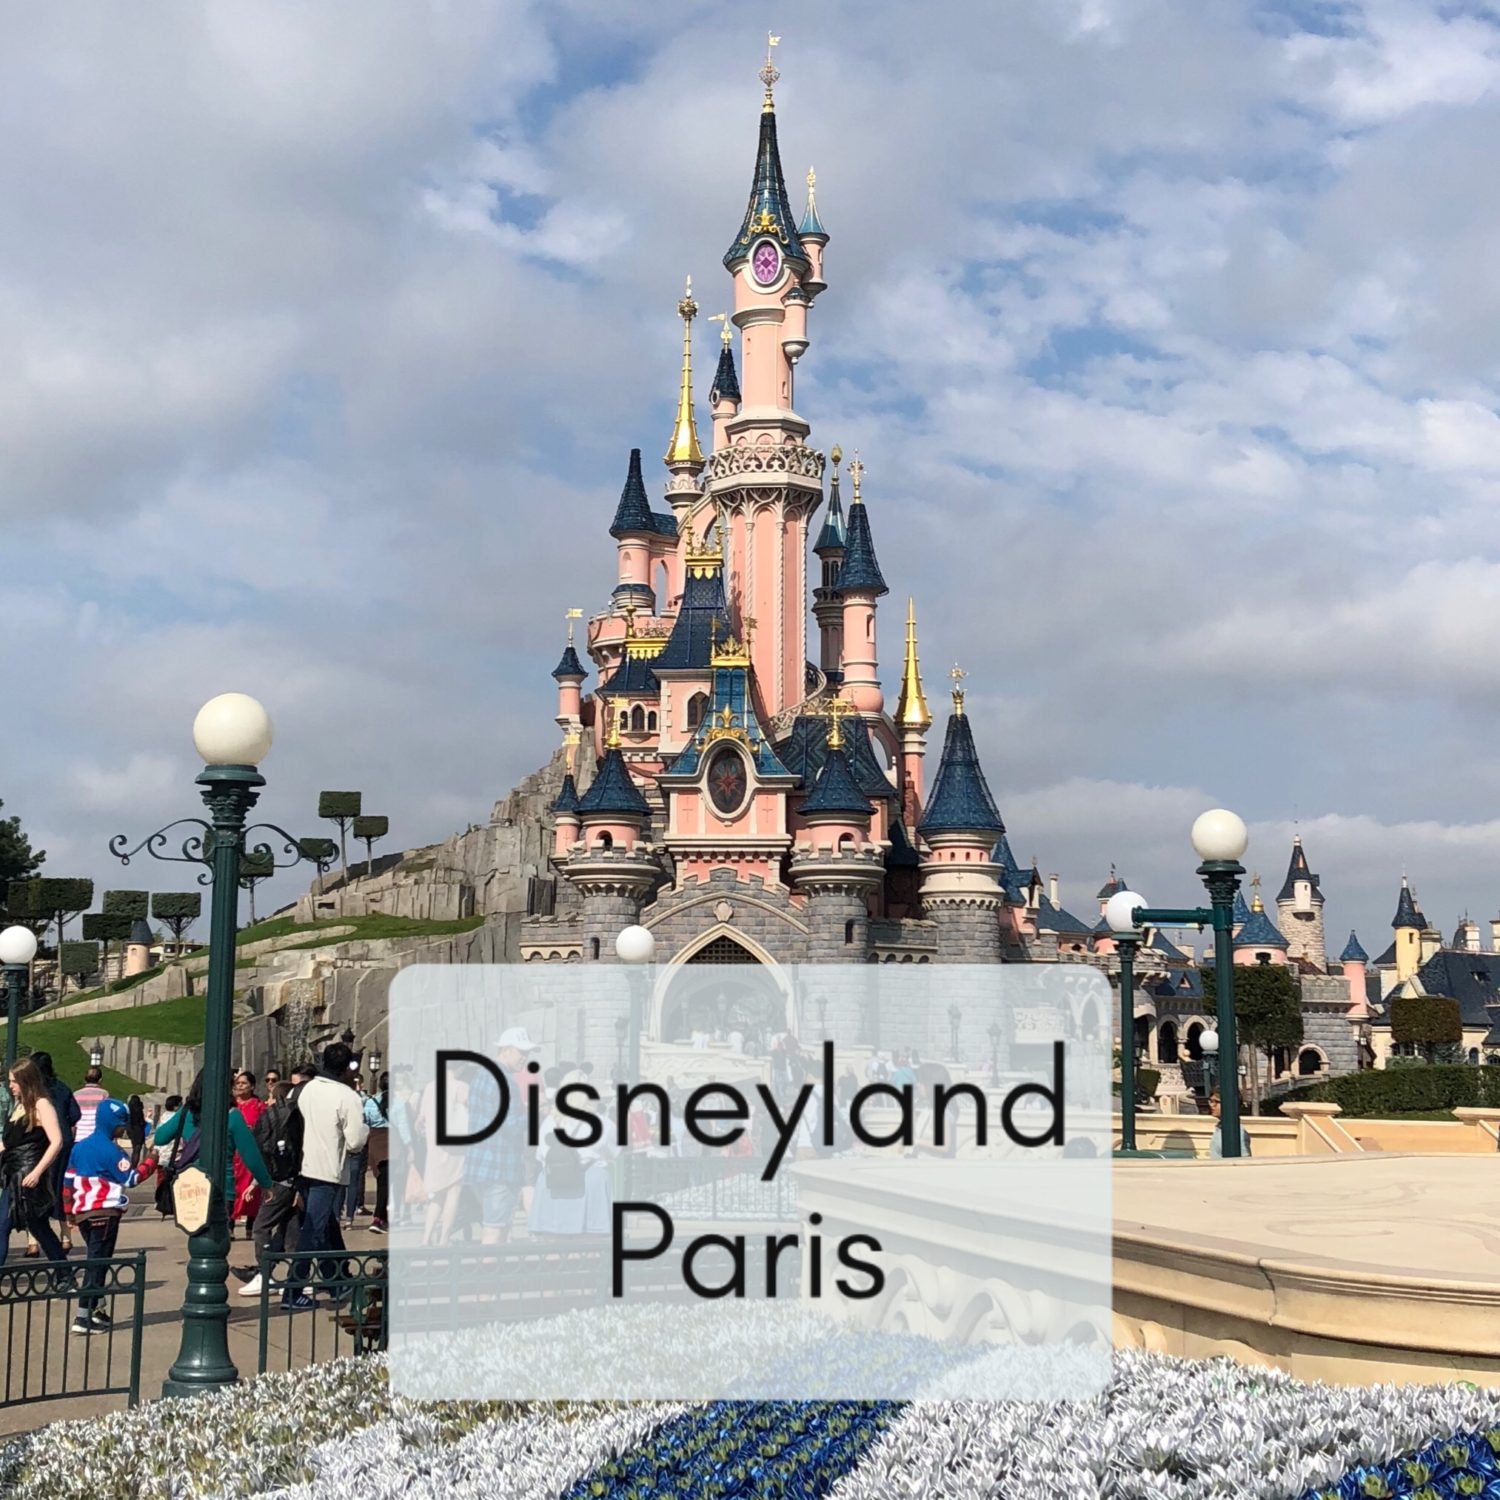 Disneyland Paris Solo: Is it worth it